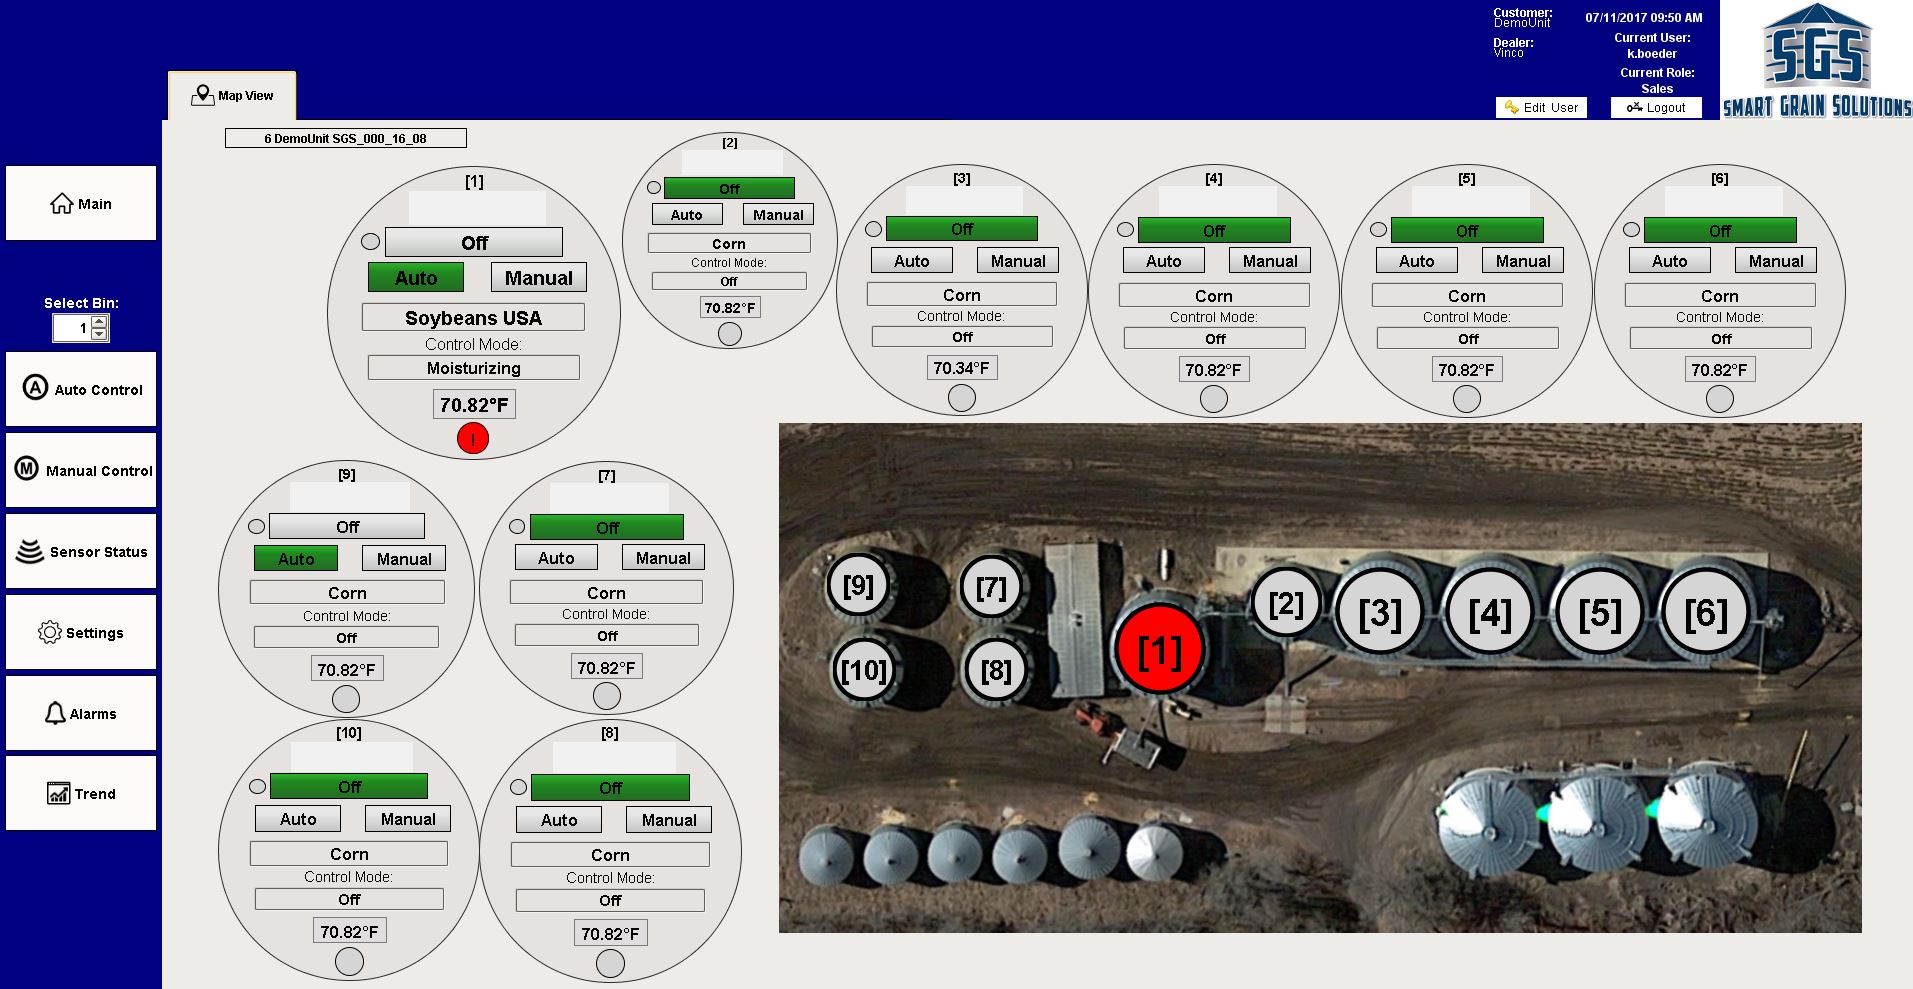 Ignition Site View Alarm